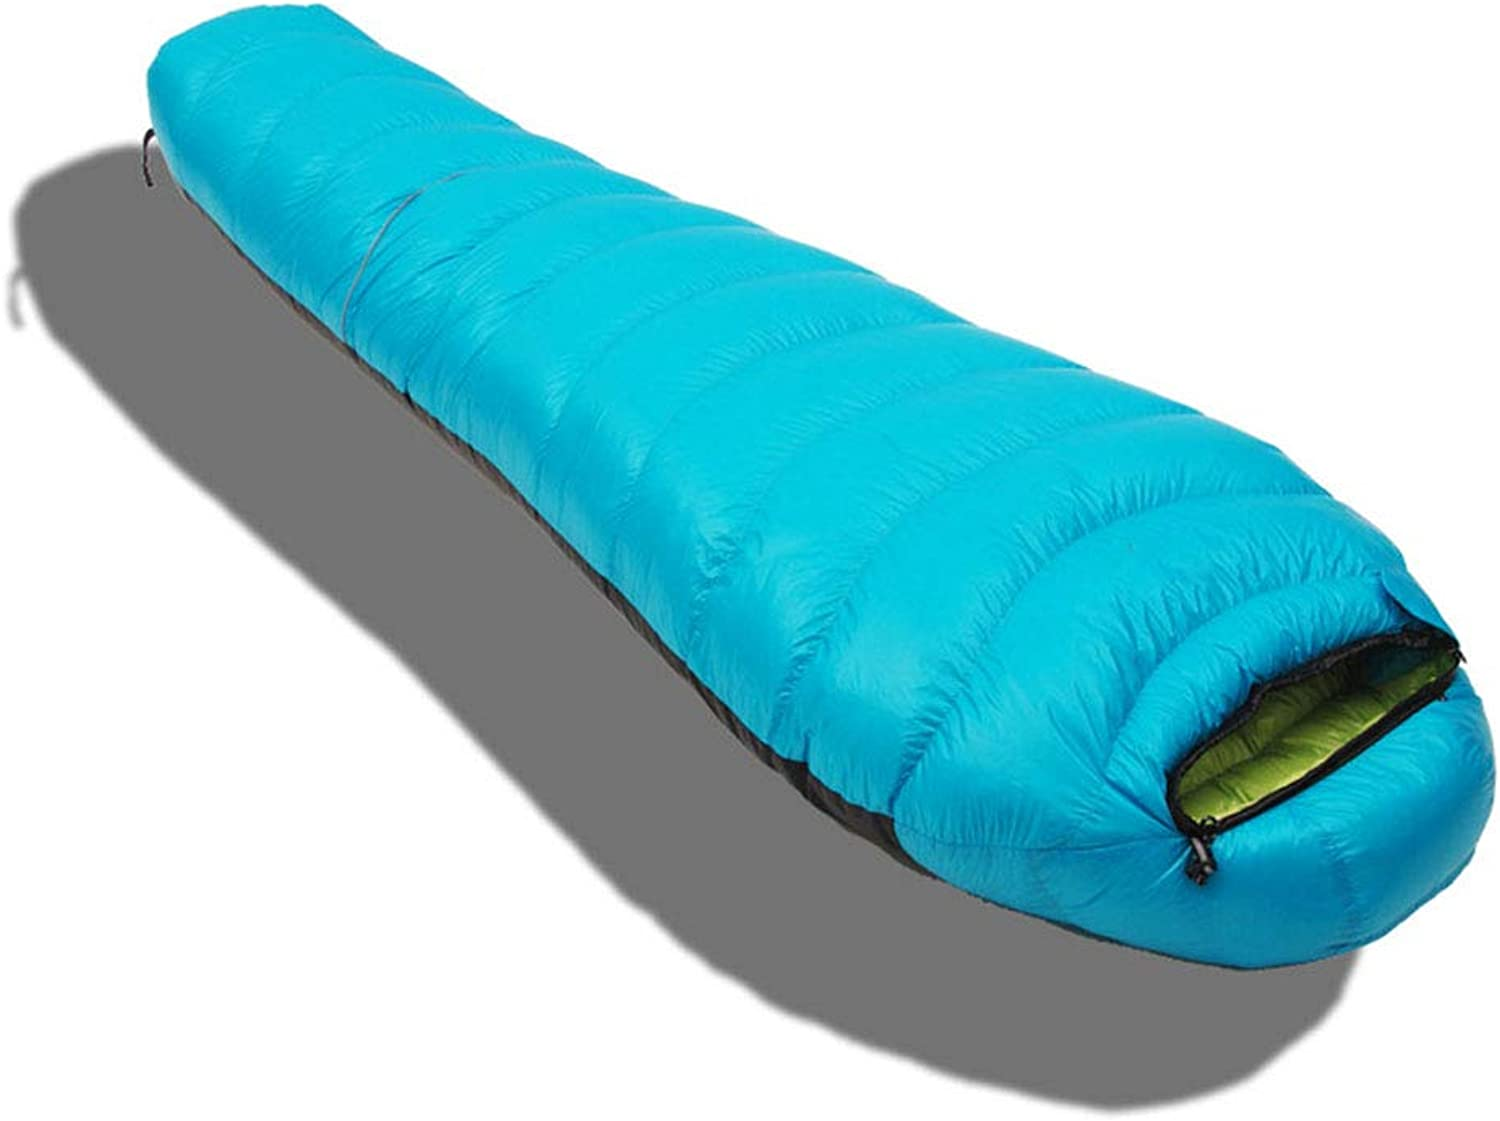 Sleeping Bag, Mummy Warm Sleep Bags Lightweight Waterproof Sleeping Pad Comfortable Portable Adults Sleep Sack Great for Outdoor Camping Extreme Expeditions,lightbluee,1200g